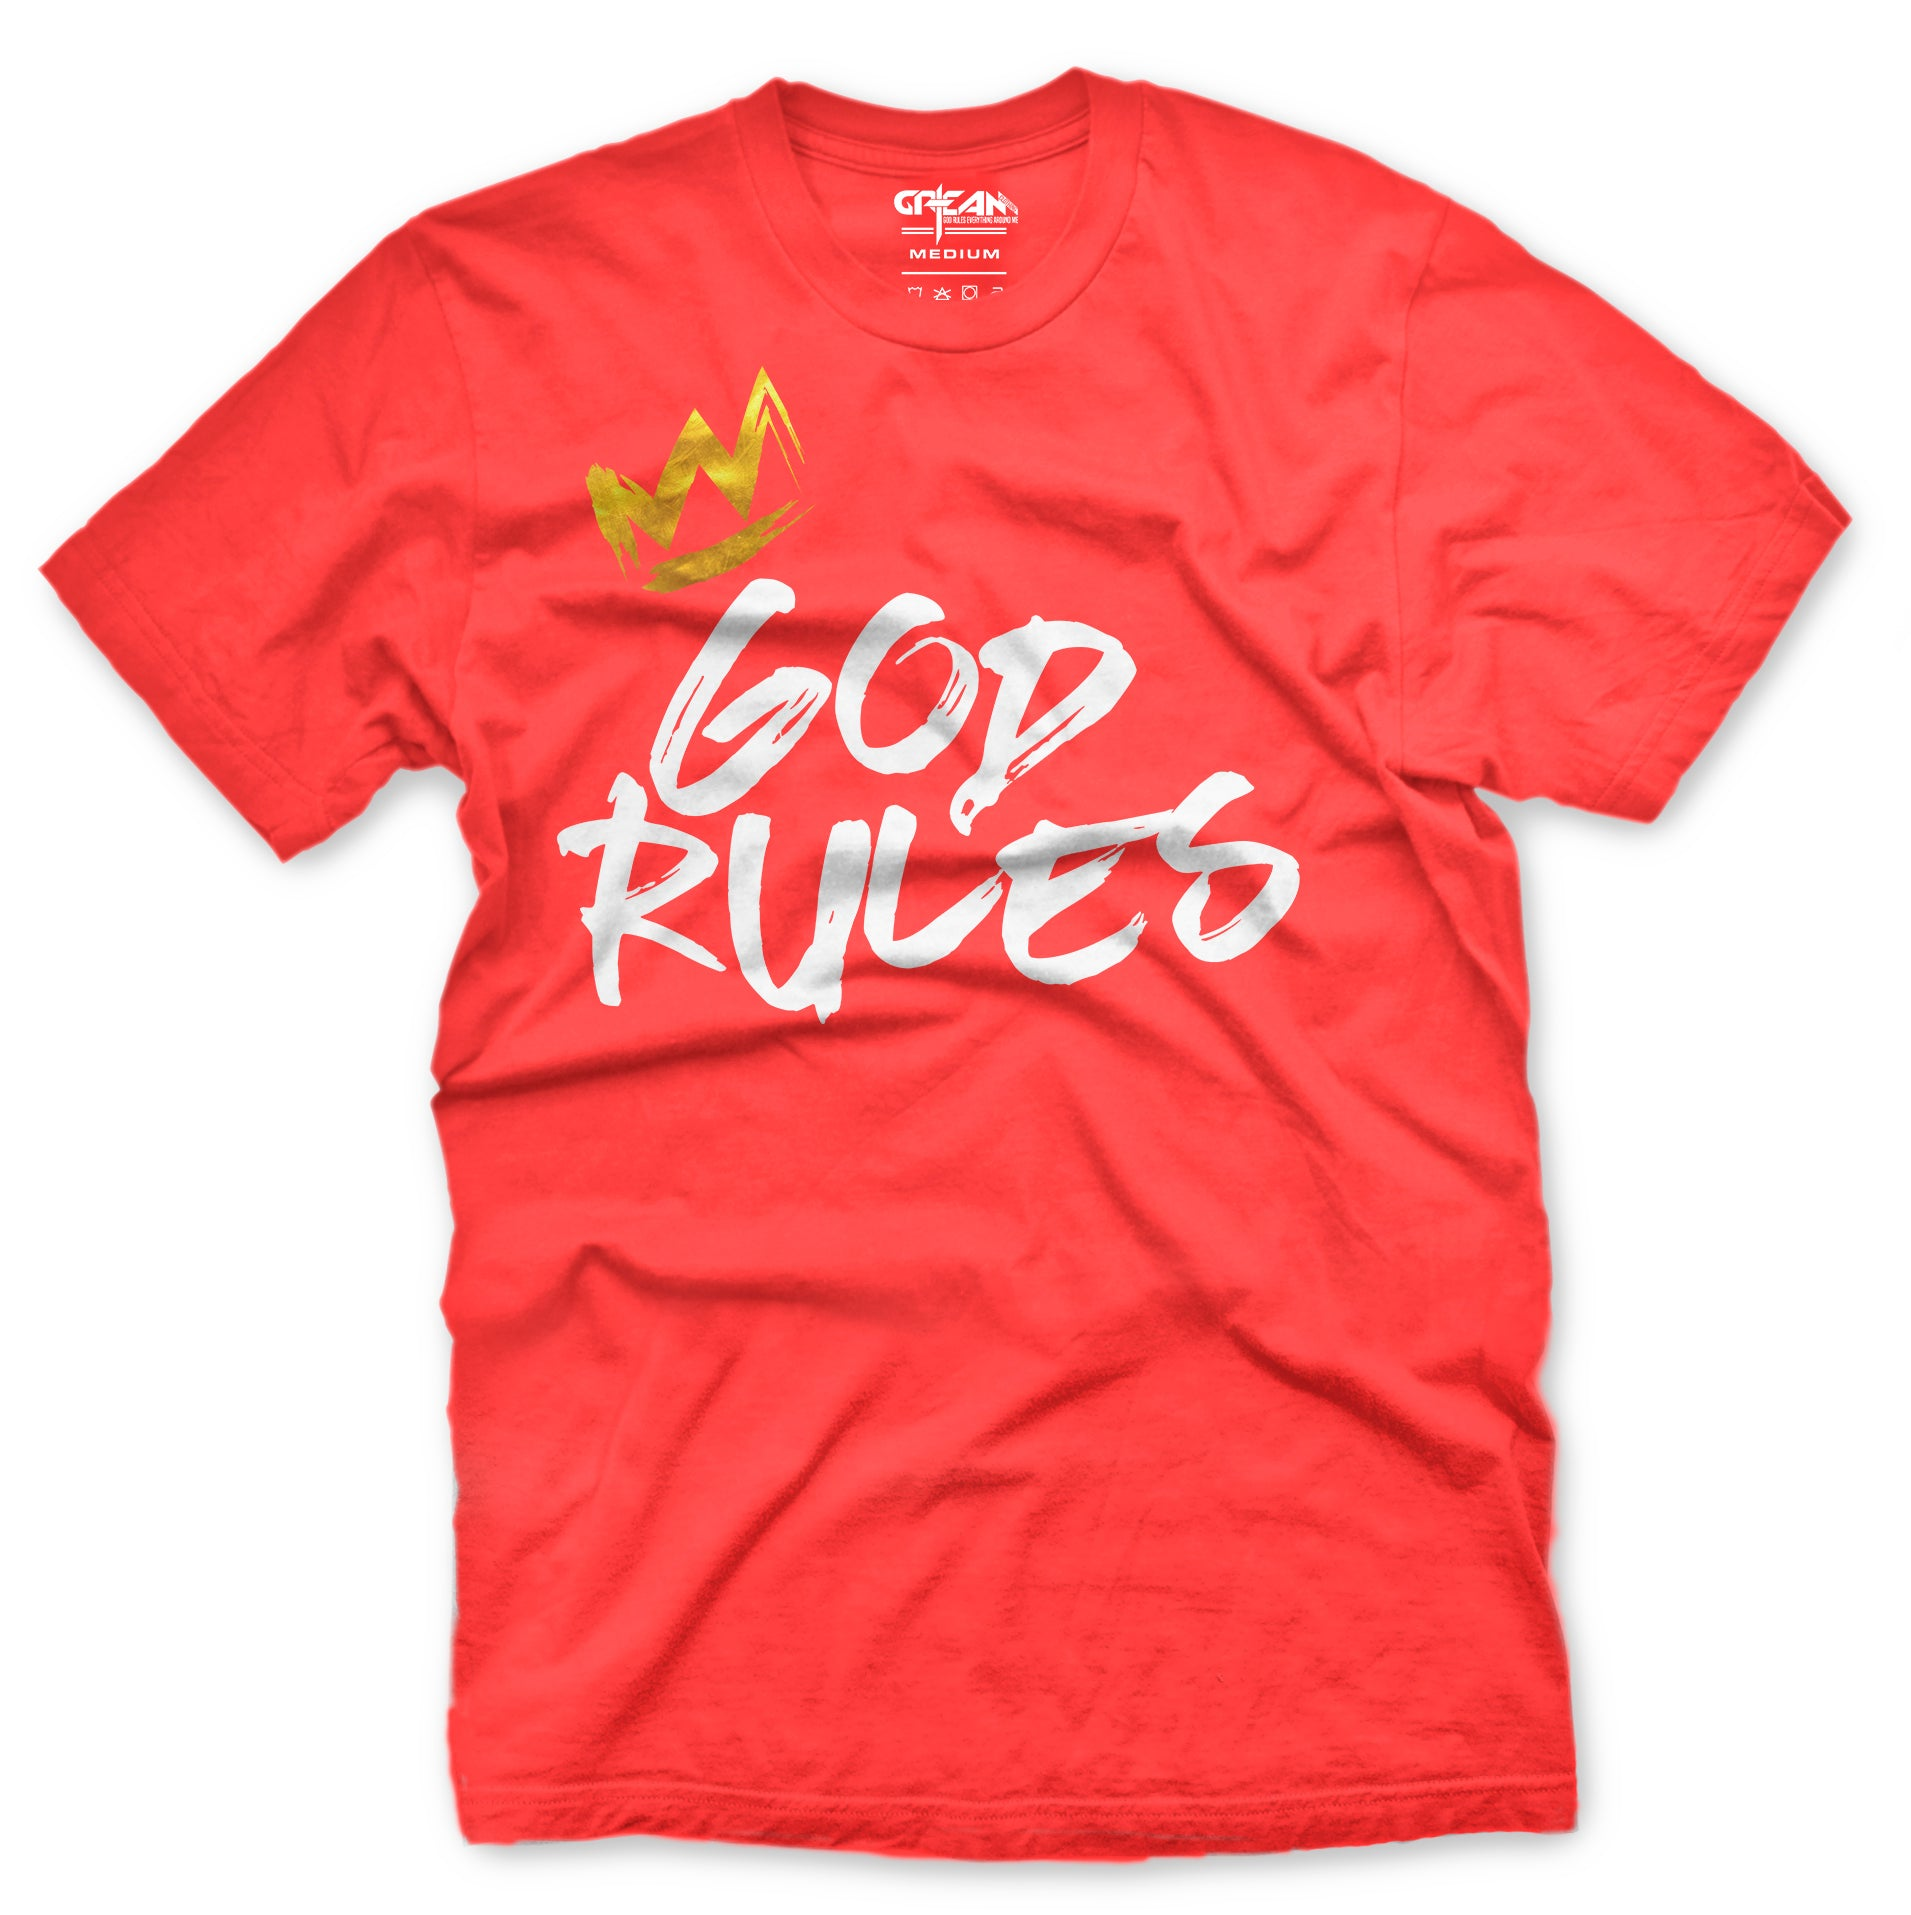 God Rules Coral Tee w/white logo - Unisex